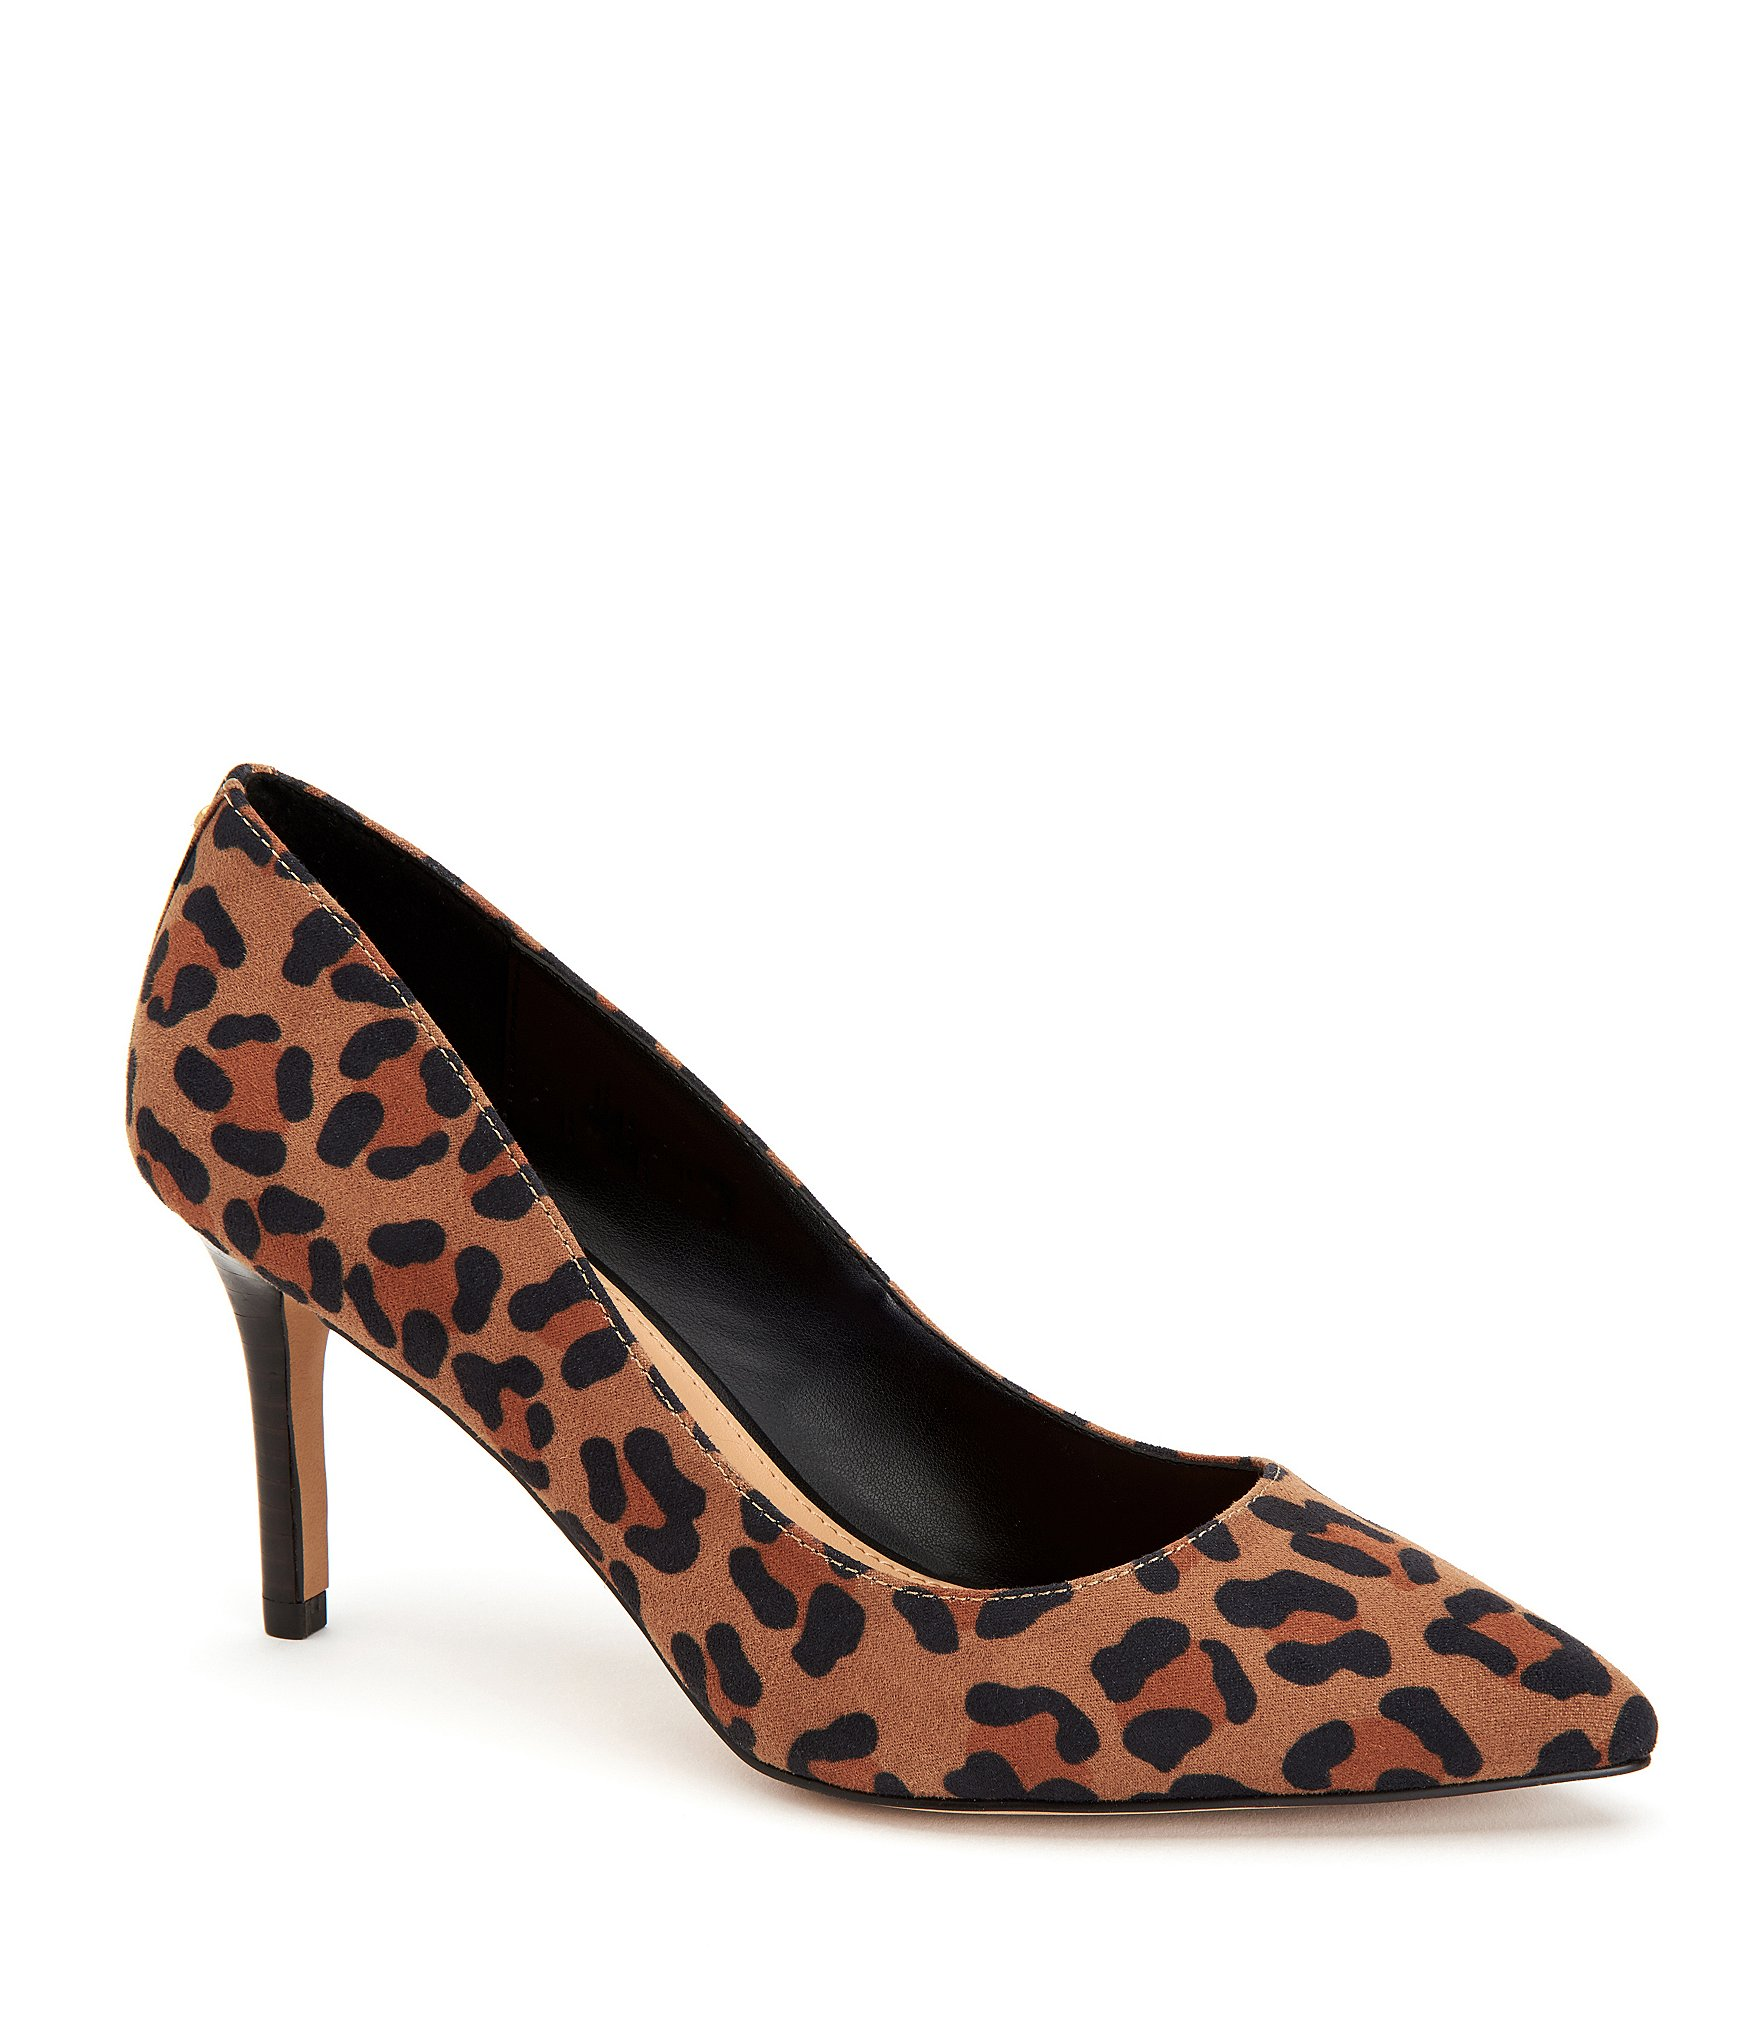 Prince Satin Leopard Print Bow Pumps